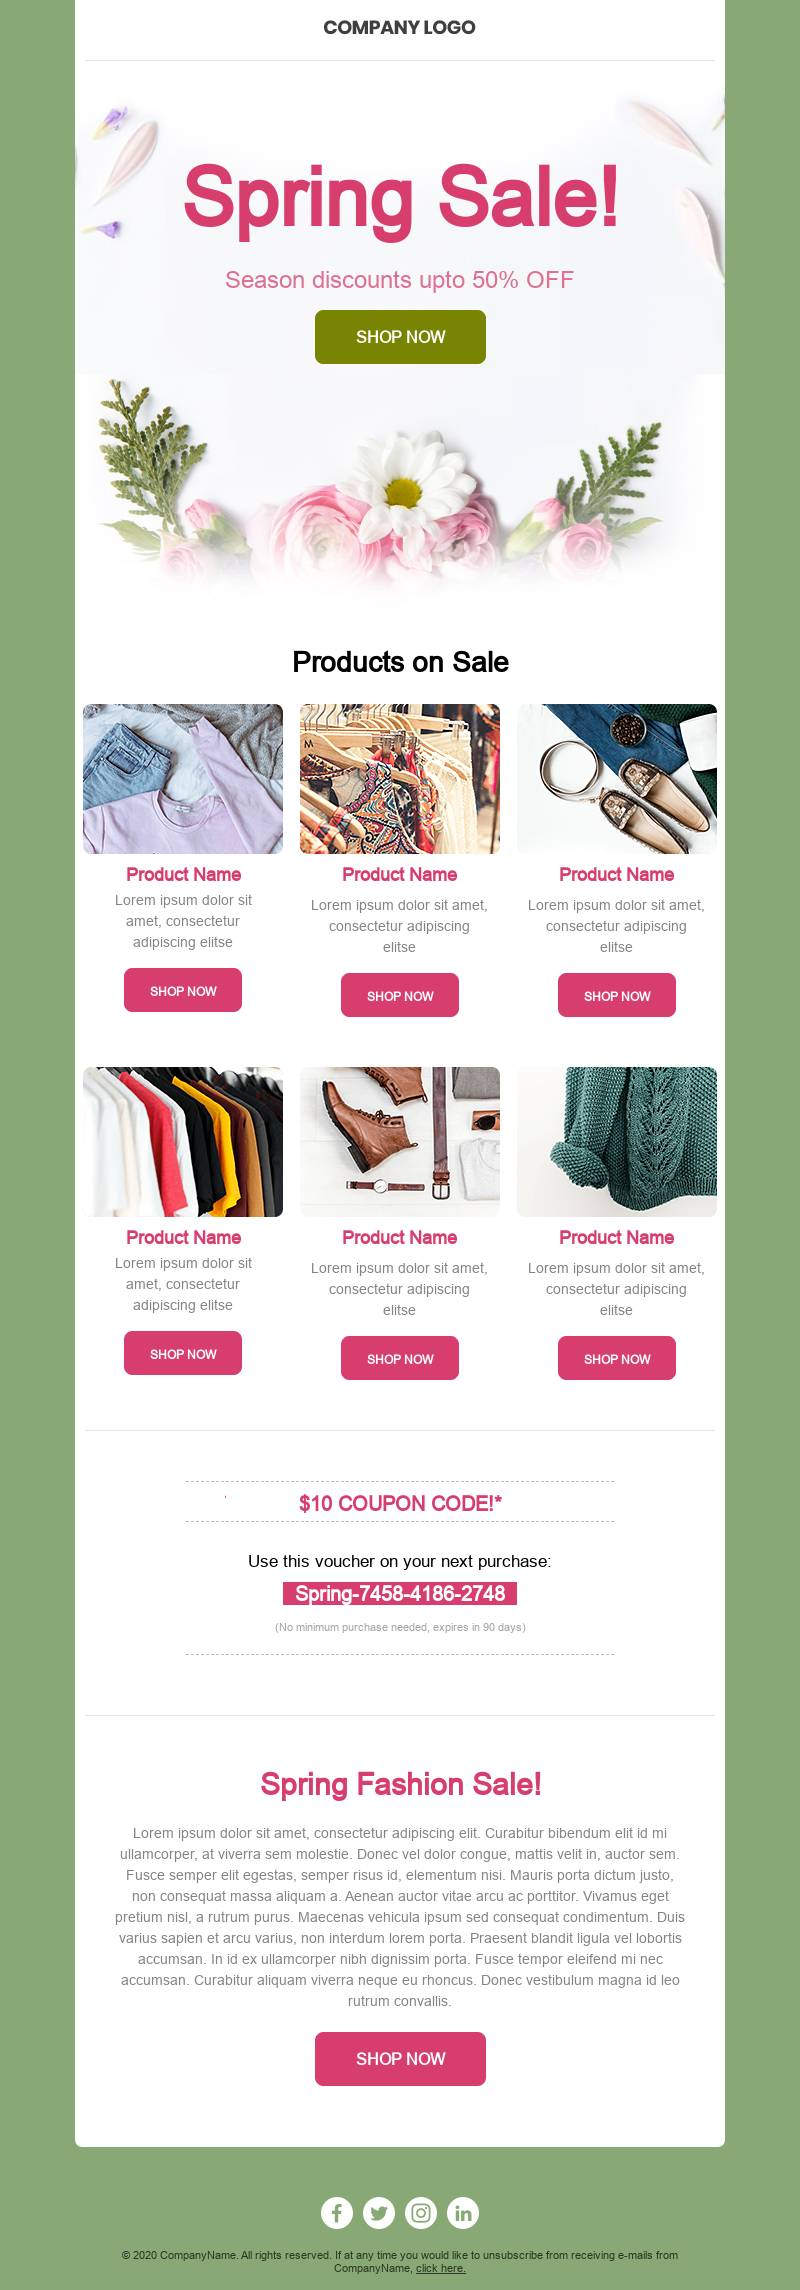 Fresh Deals email template